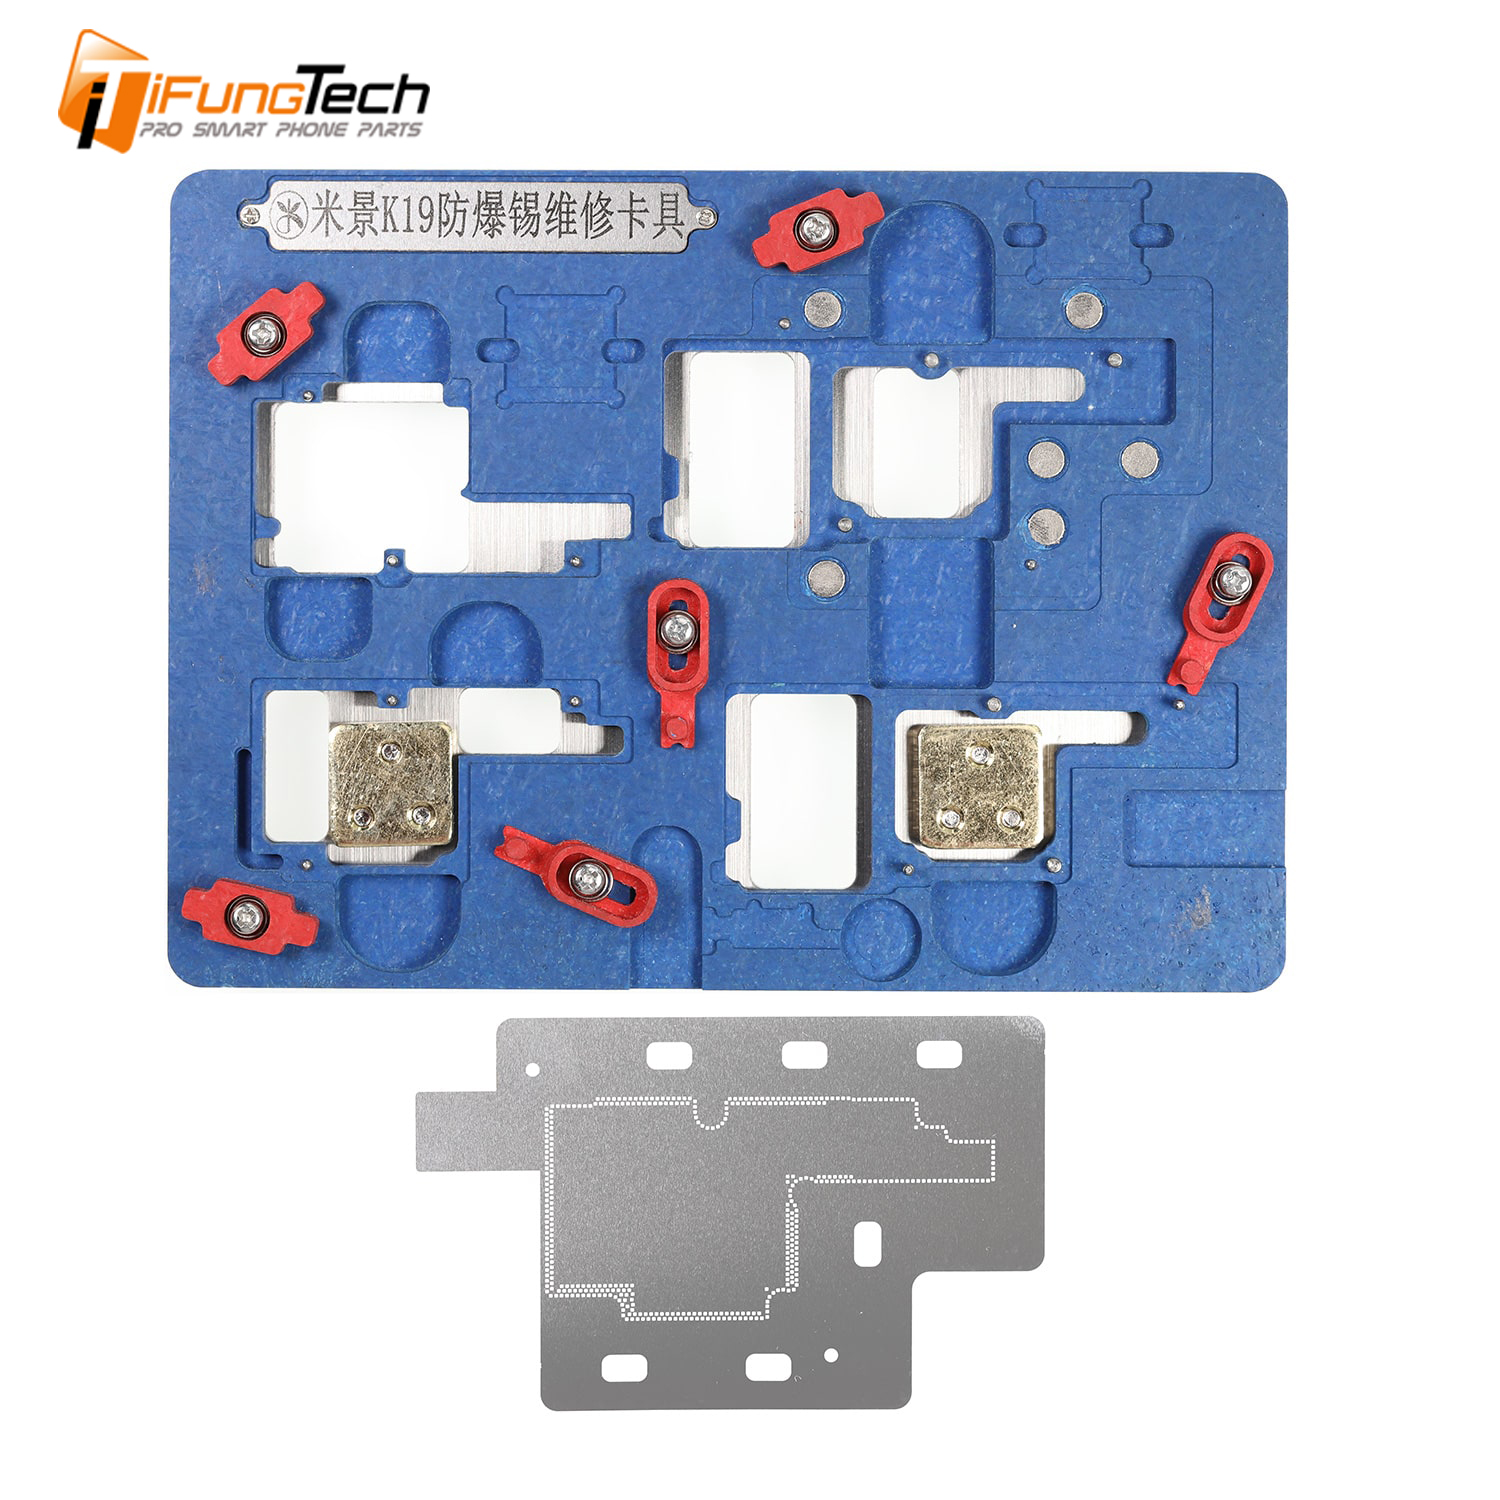 MJ K19 Motherboard PCB Holder Fixture Circuit Board PCB Holder for iPhone X cellphone repair Tool(China)